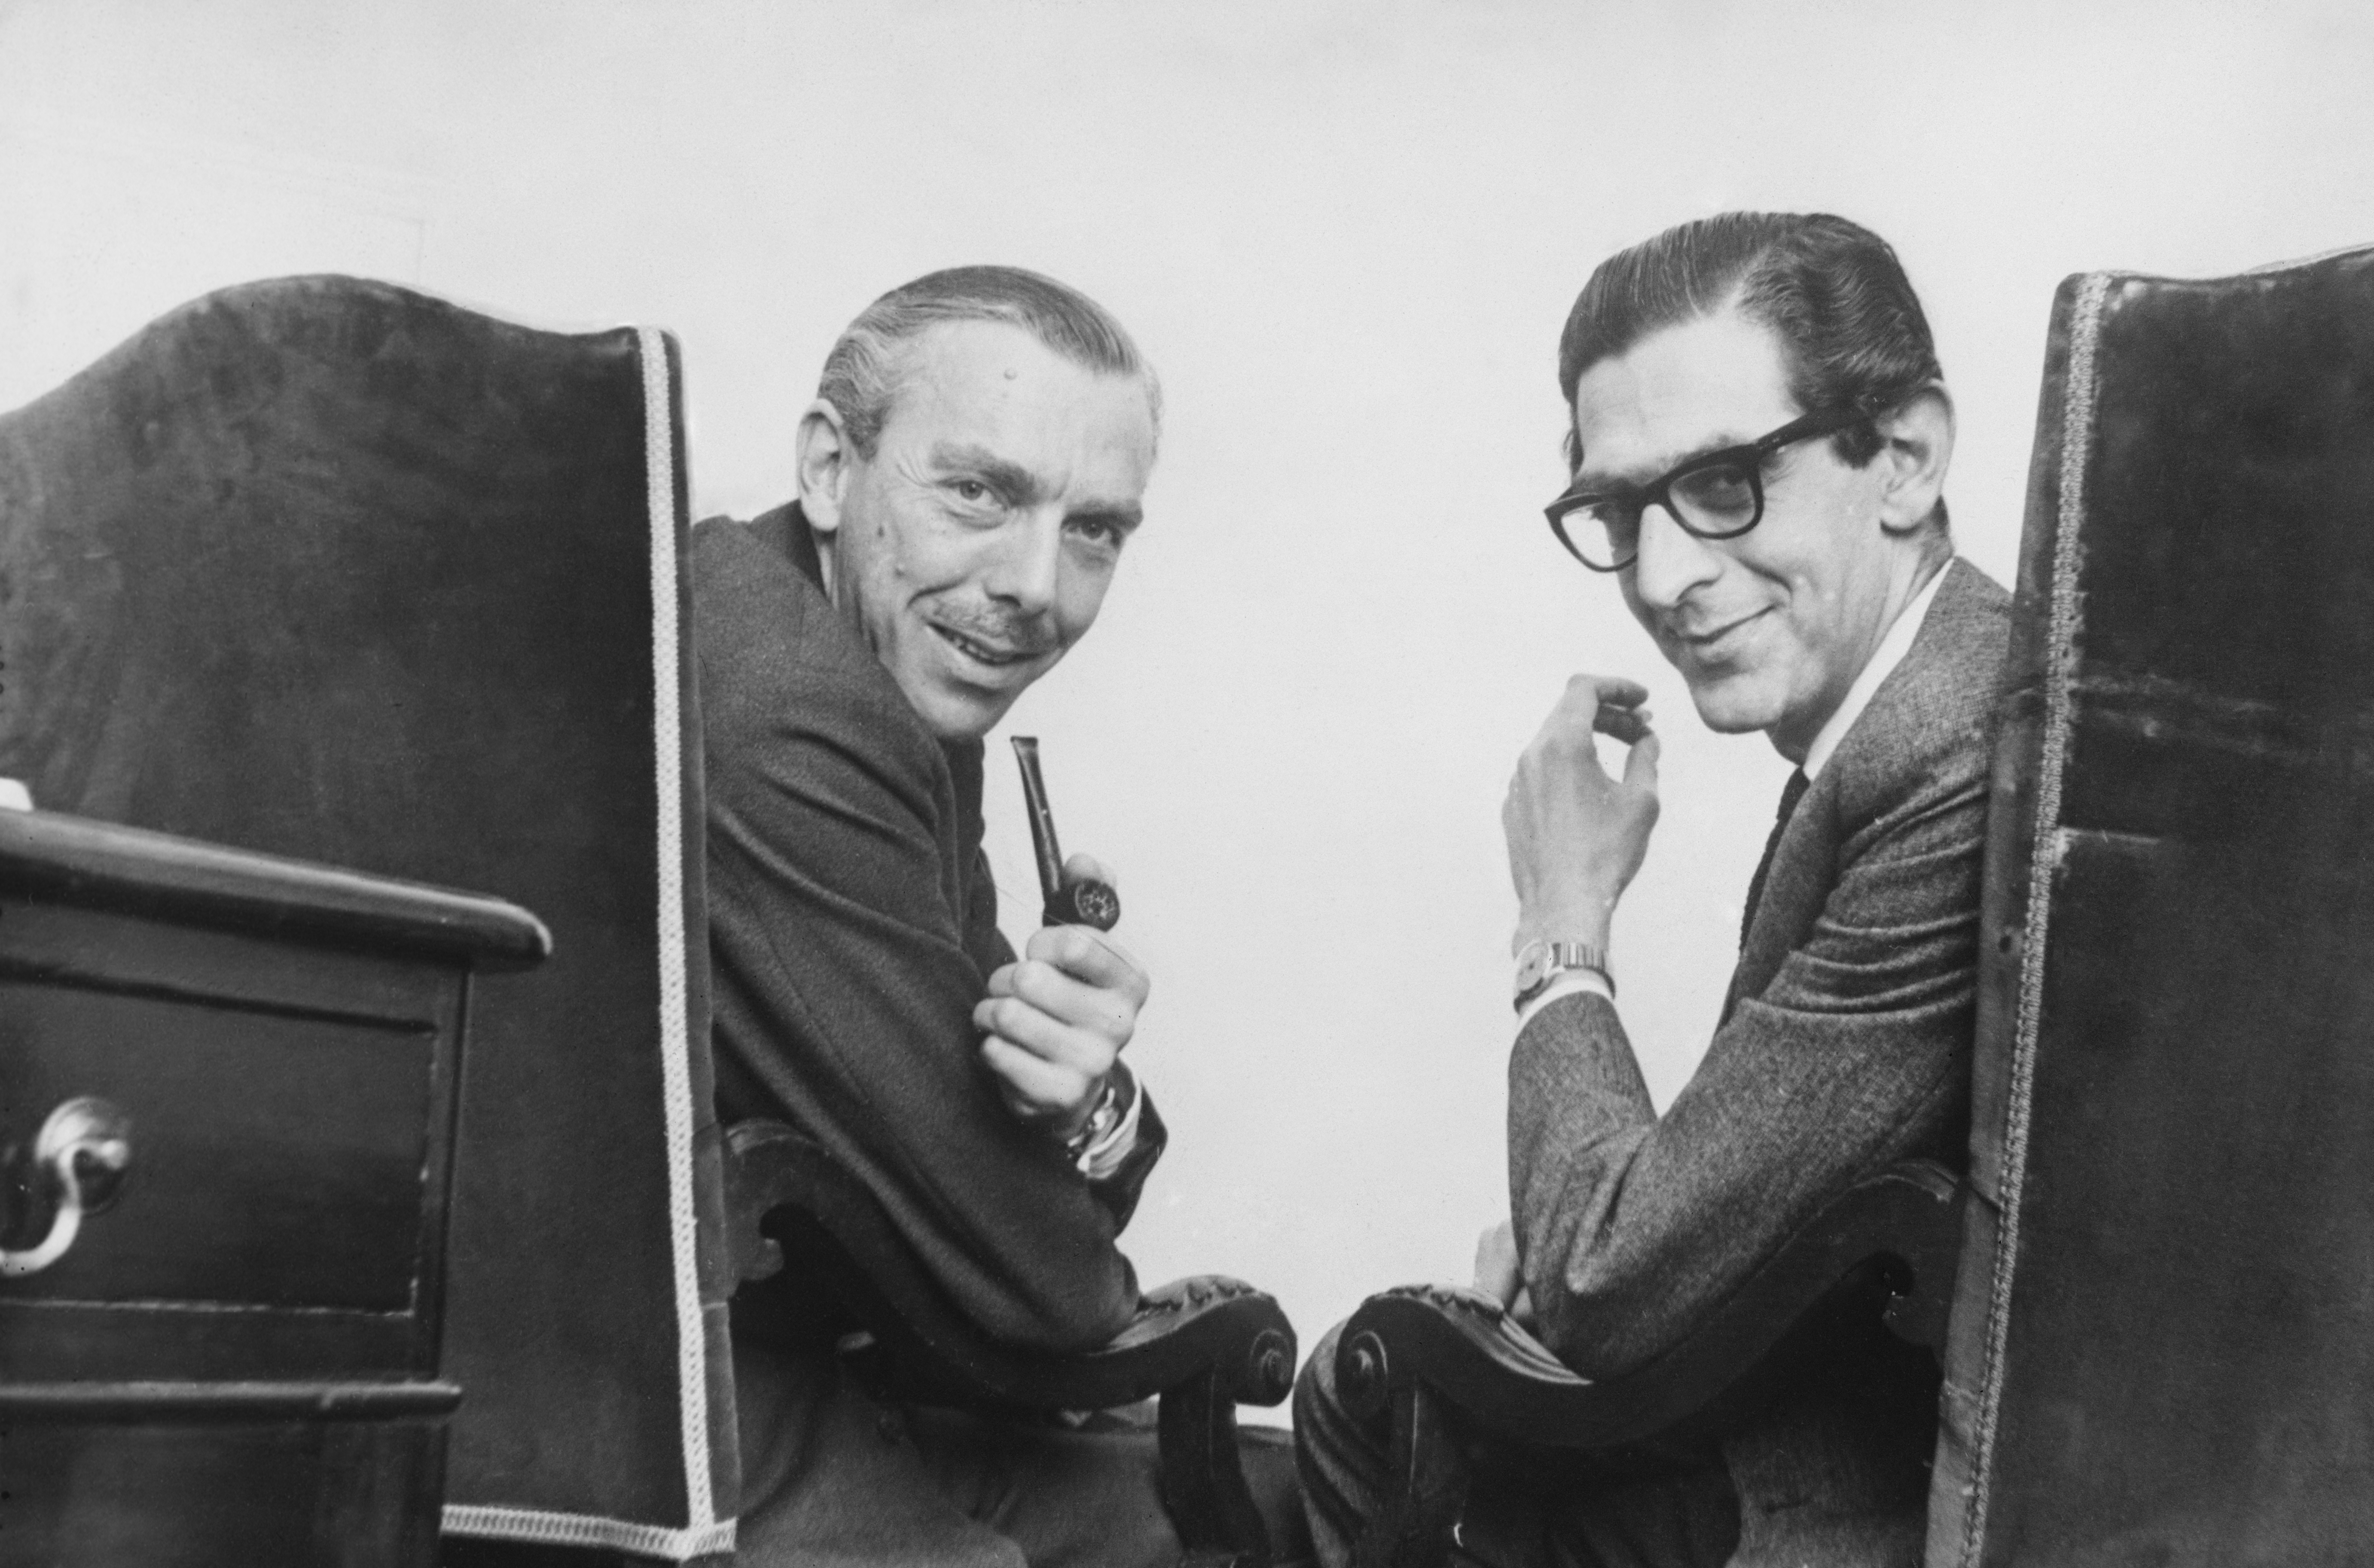 English comedy writers Frank Muir (1920 - 1998, left) and Denis Norden (1922 - 2018) at their office in Regent Street, London, 30th April 1963. (Photo by Hulton Archive/Getty Images)